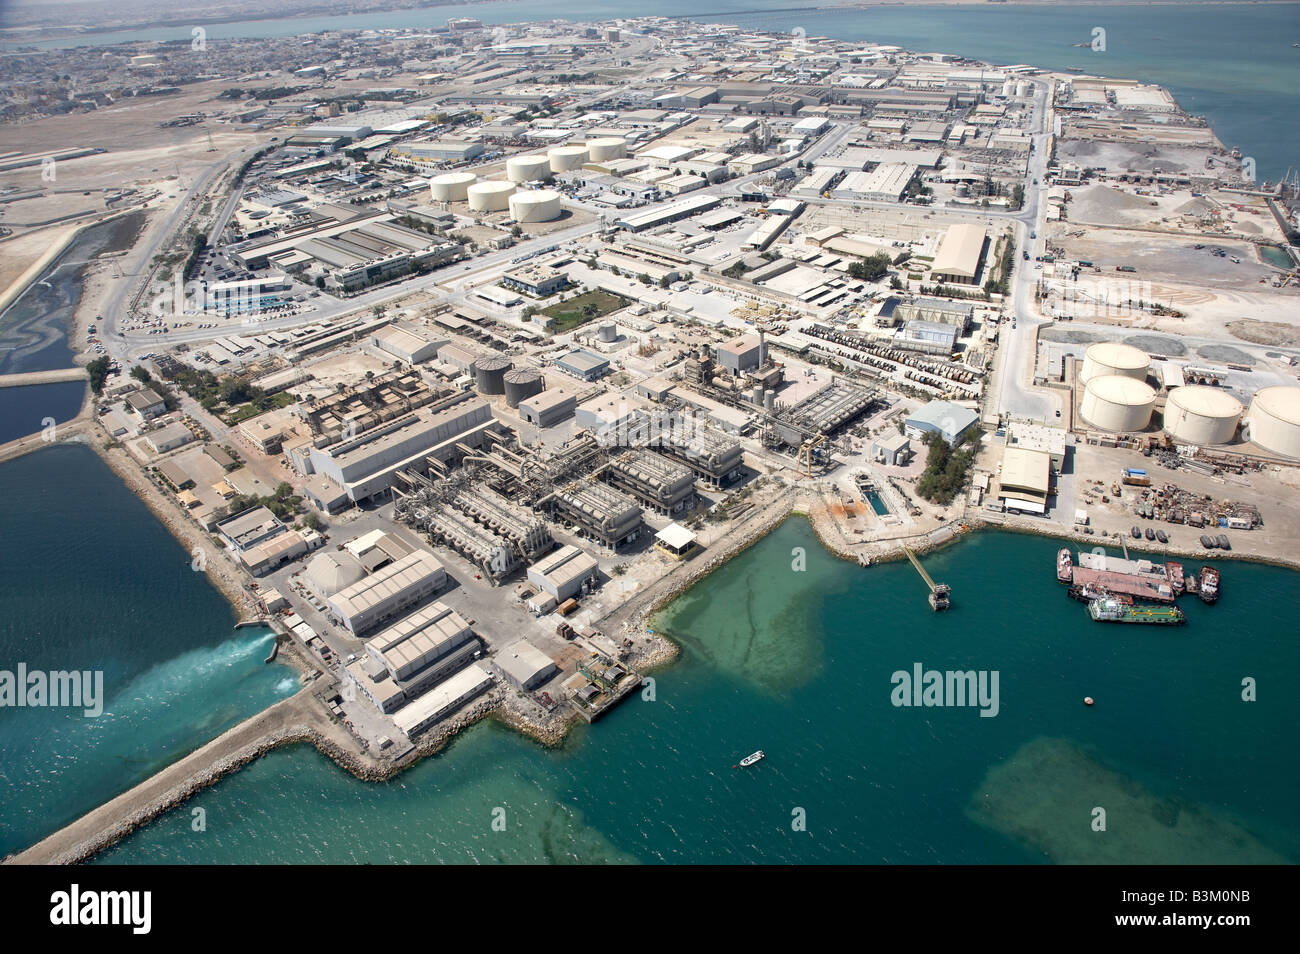 Arial photograph of costal industrial area in Bahrain Stock